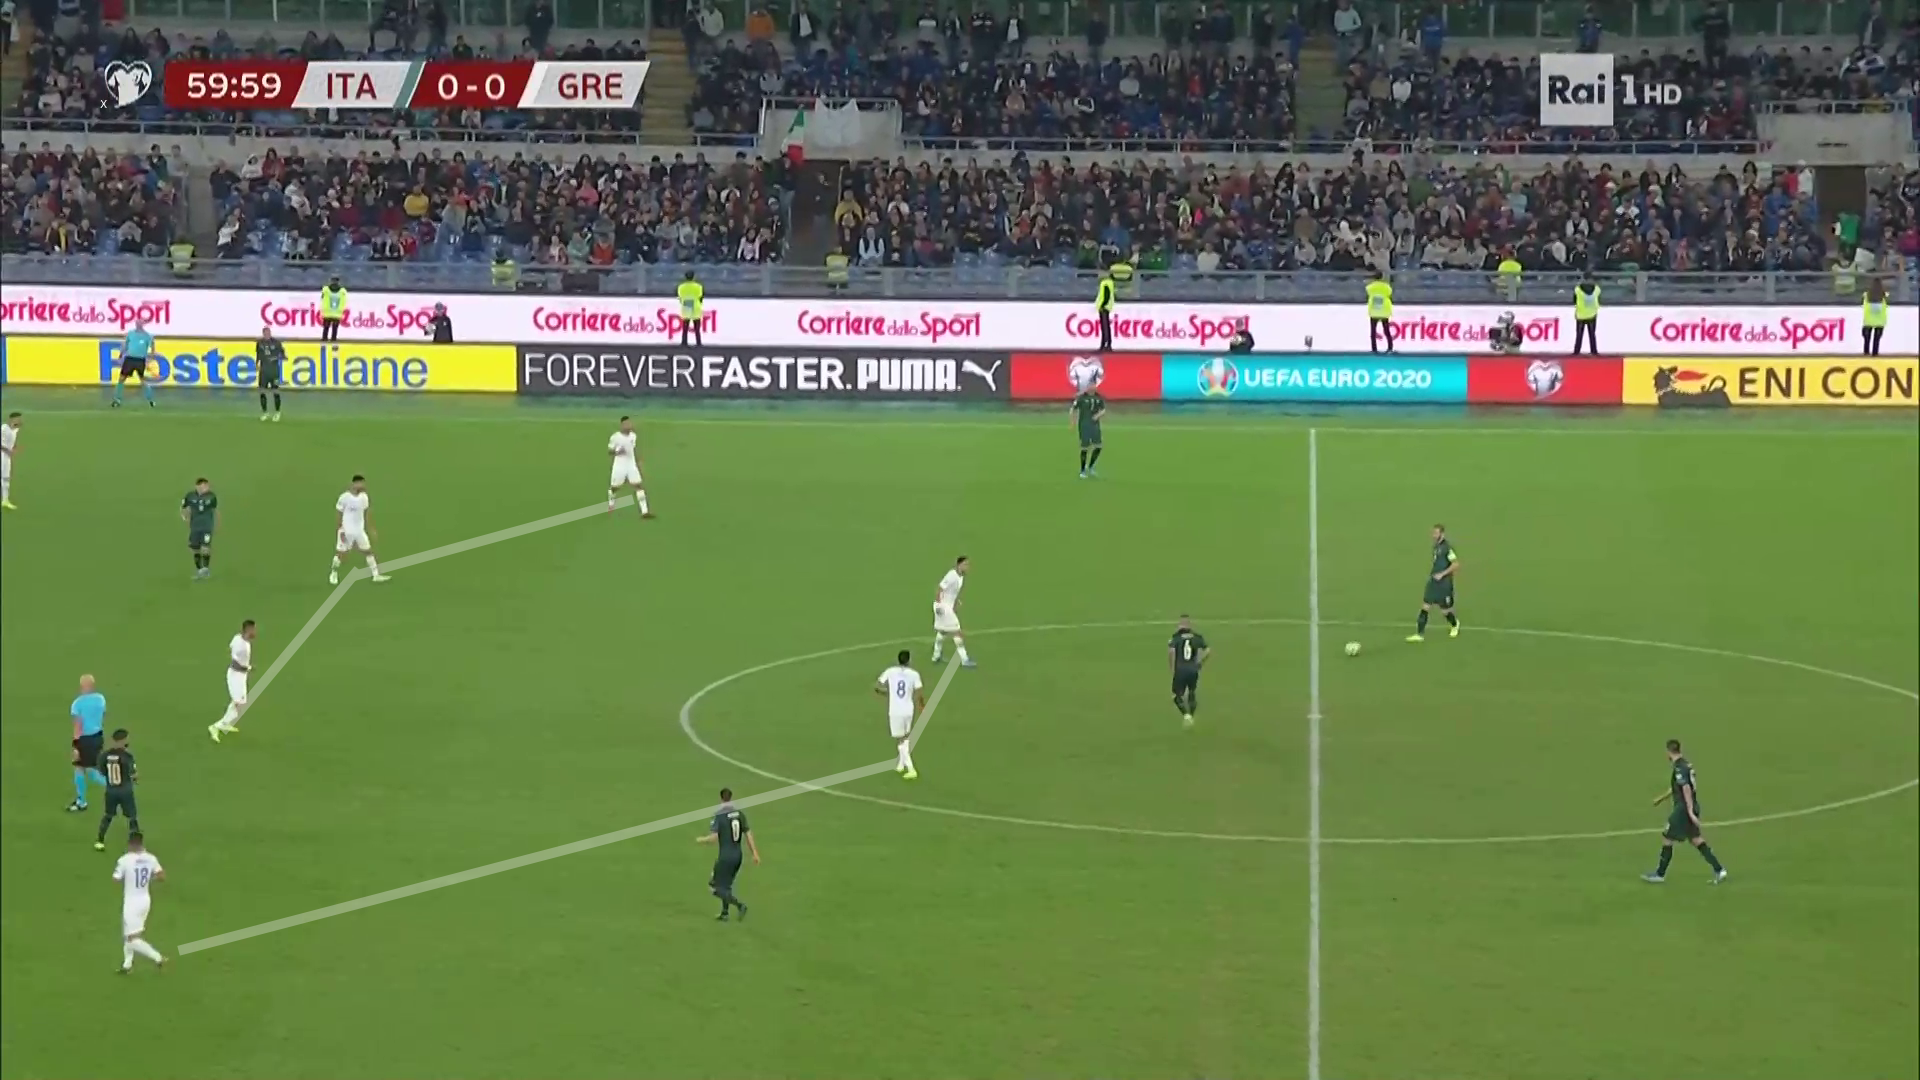 EURO 2020 Qualifiers Italy vs Greece - tactical analysis tactics